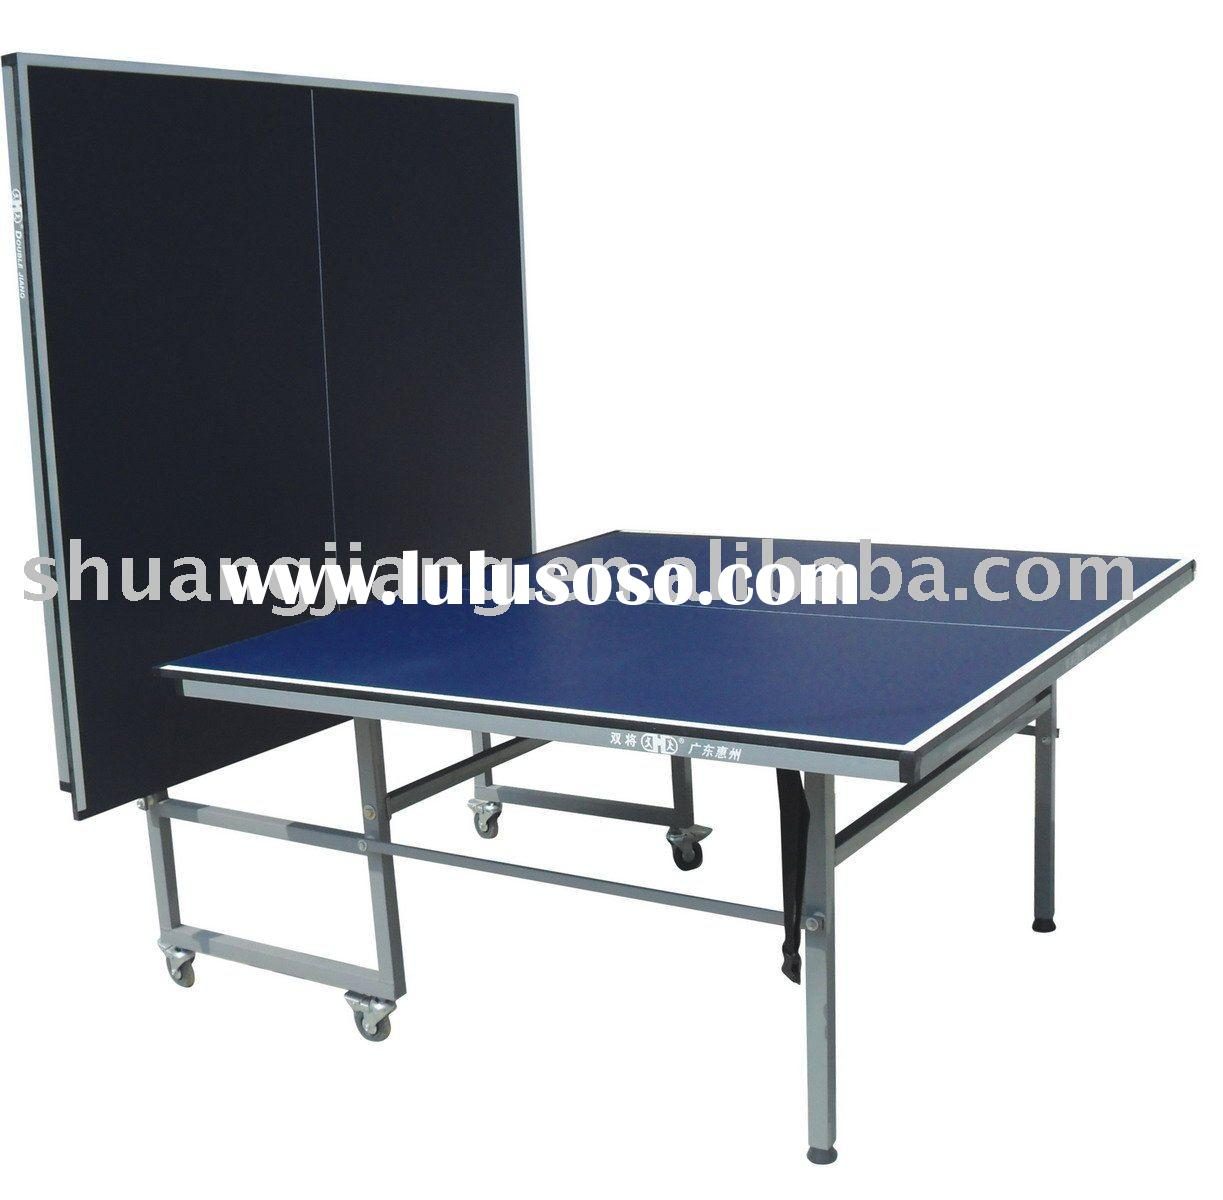 SJ-319 Portable Indoor Tennis Table,Double Folding Ping-pong Ball Table,Removable Tennis Table